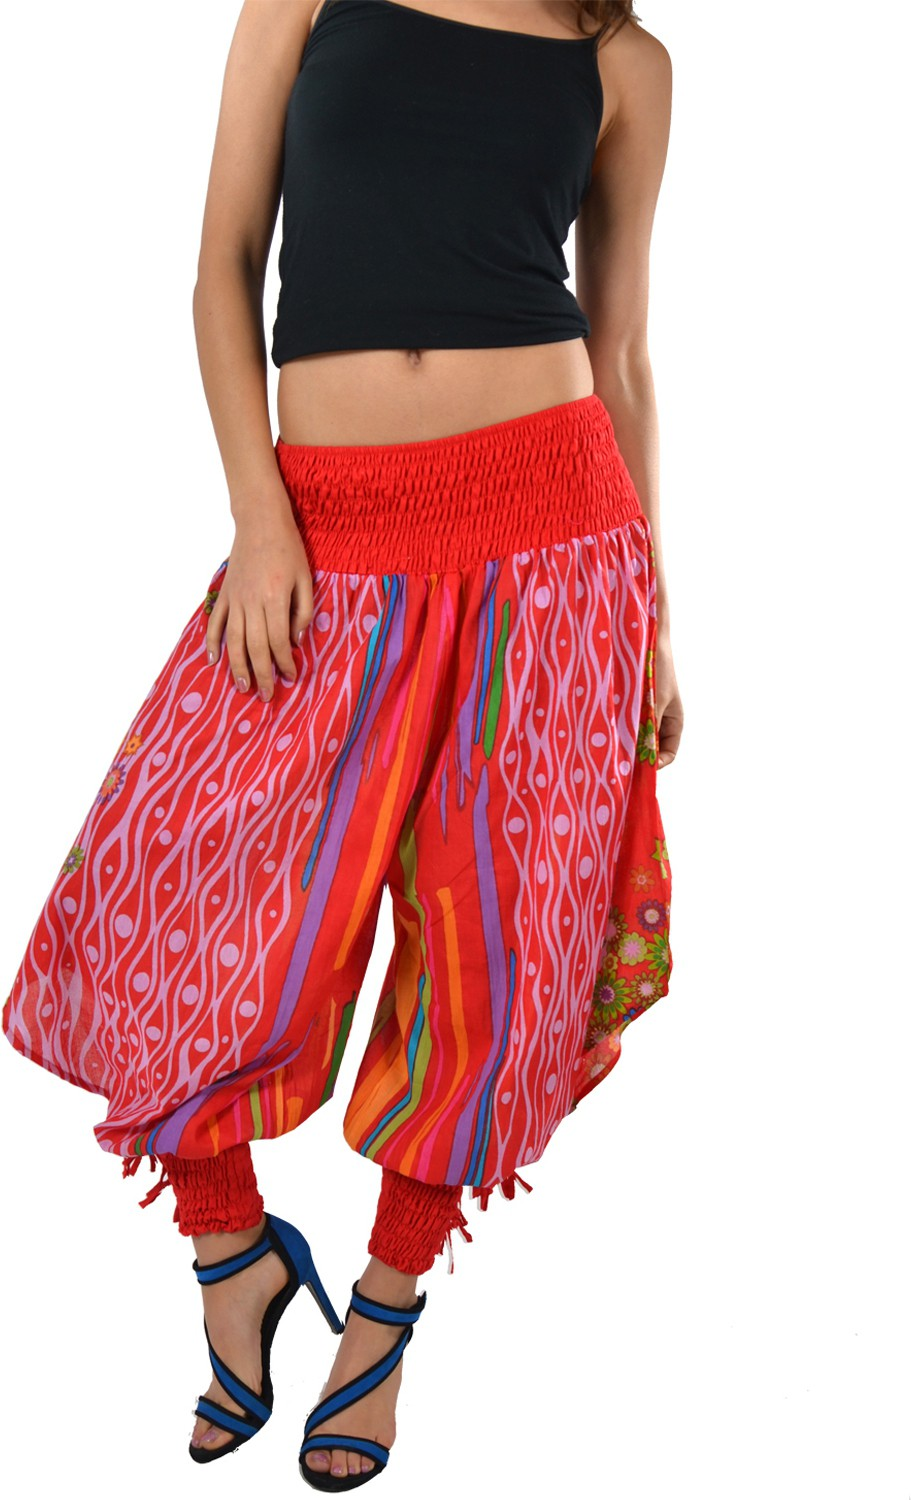 Striyah Couture Printed Cotton Womens Harem Pants